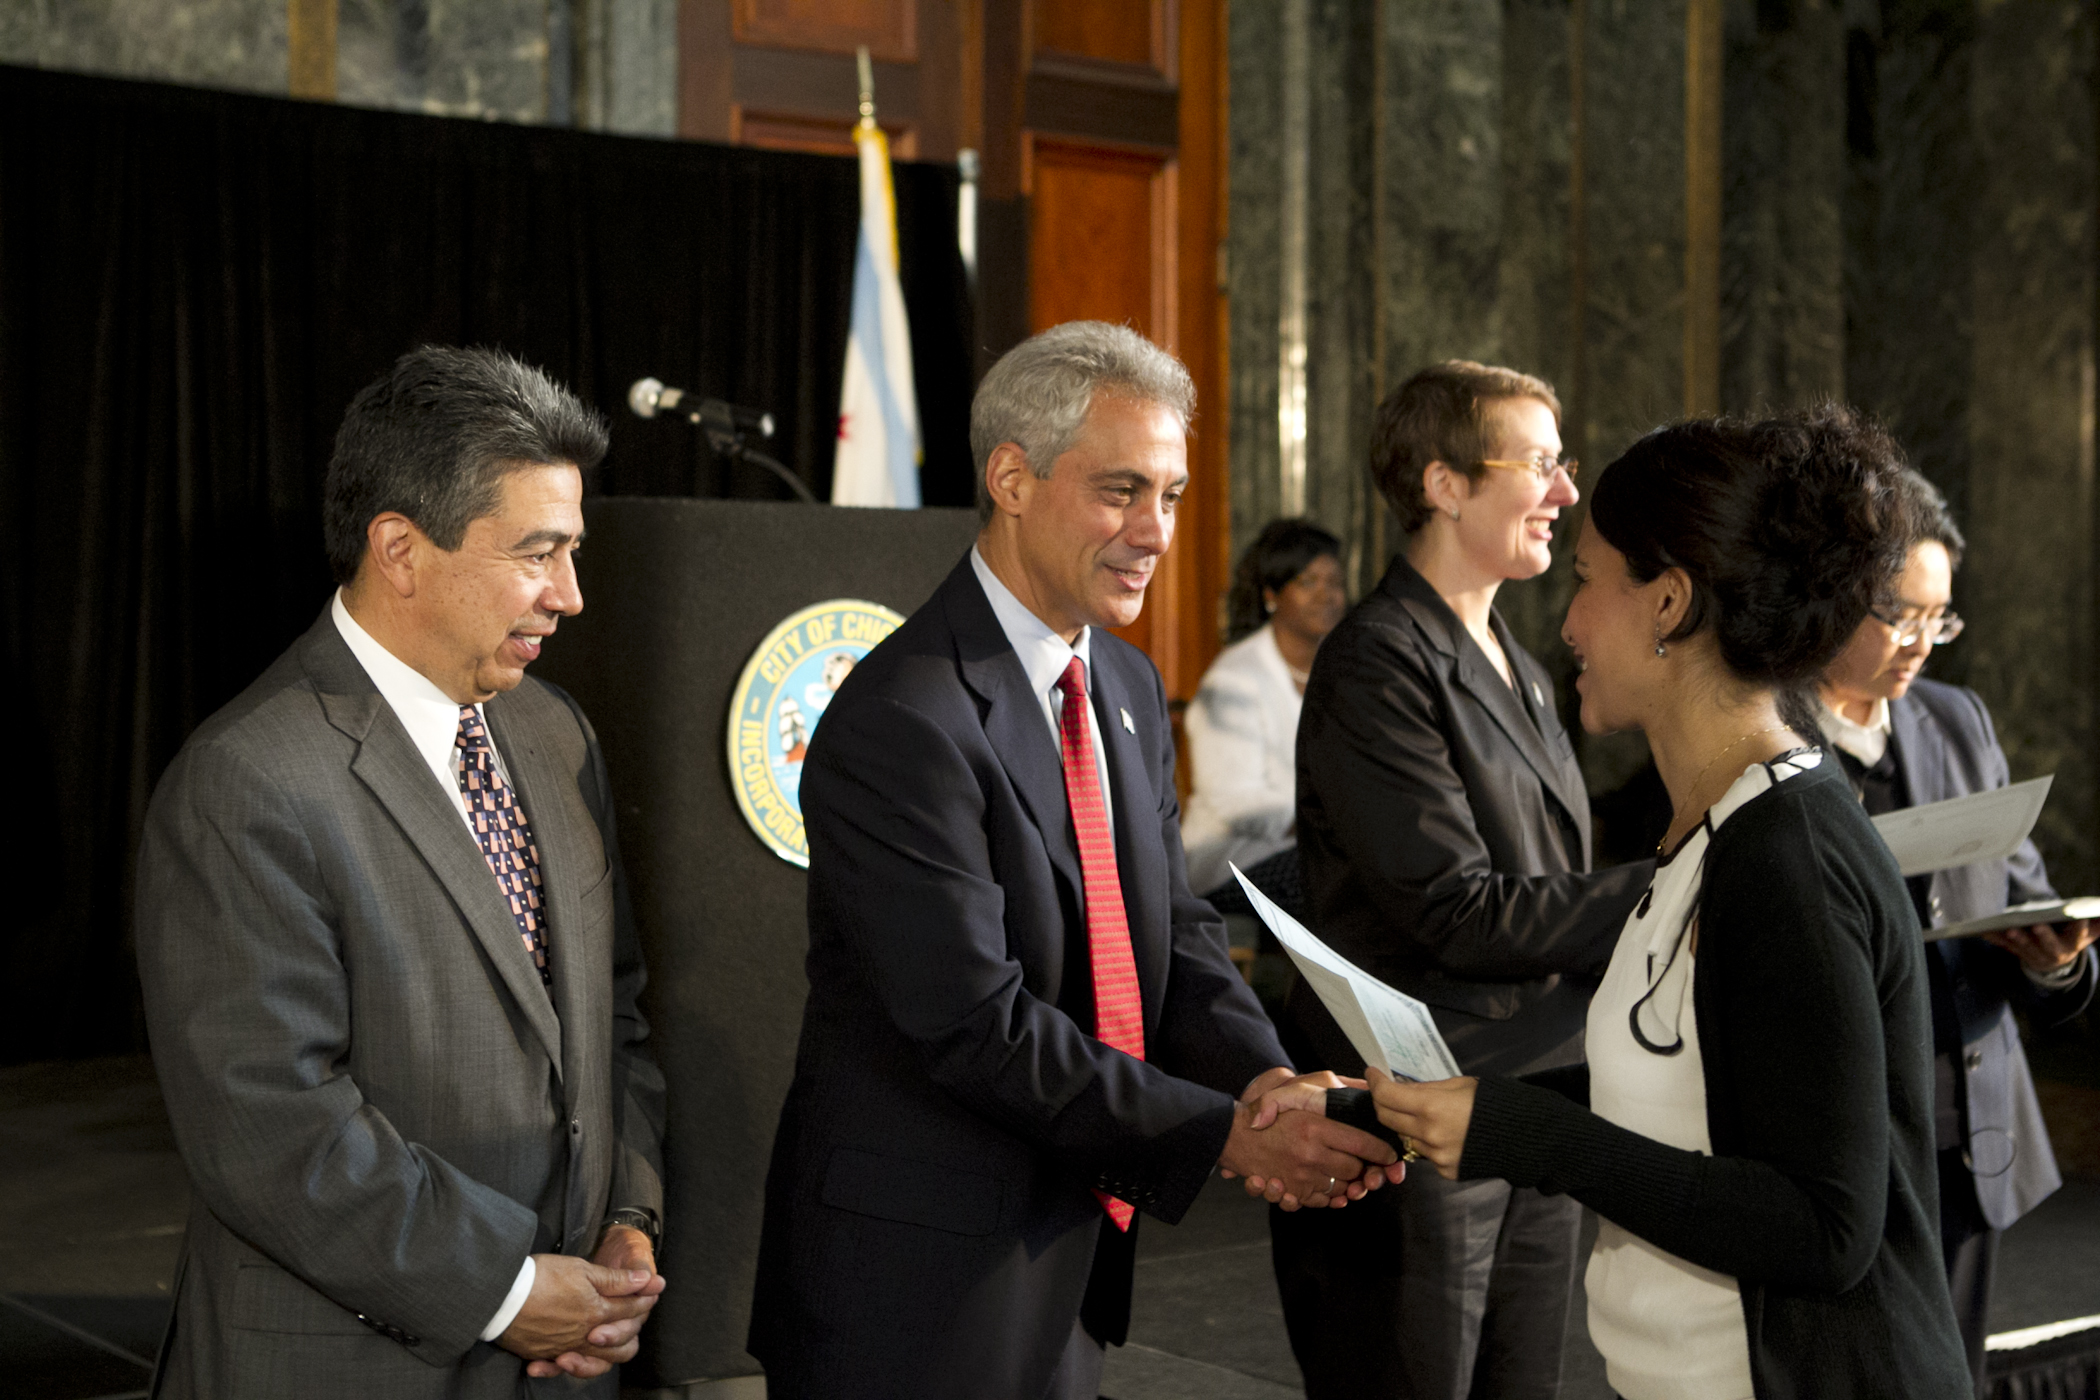 Chicago Mayor Emanuel participates in a Naturalization ceremony at the Chicago Cultural Center in Chicago, IL.